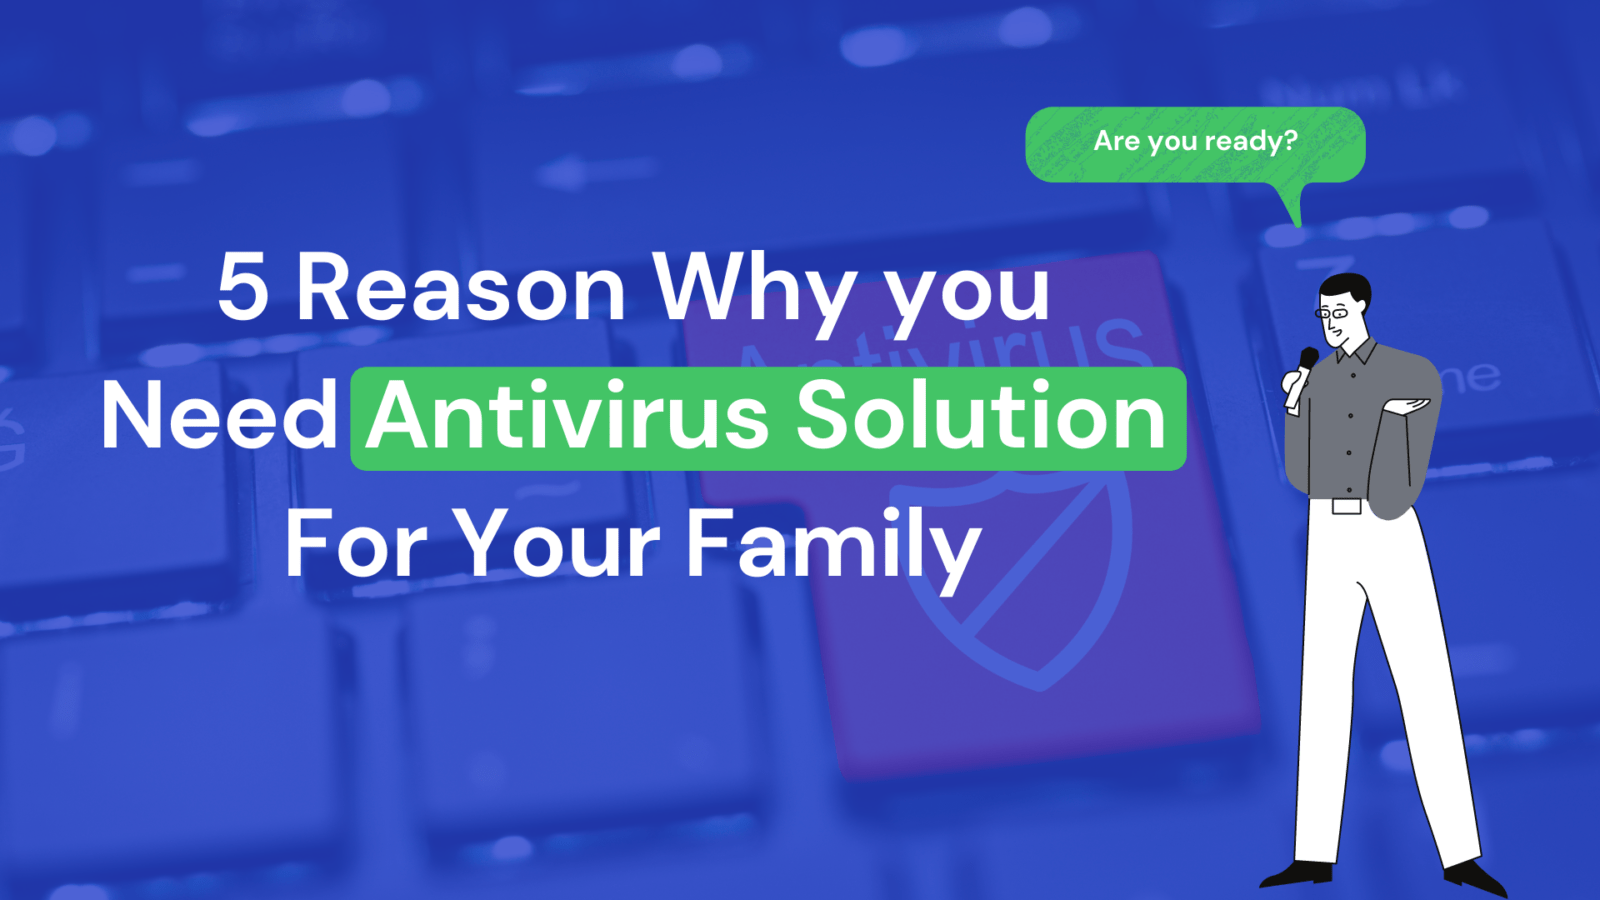 5 Reason Why you Need Antivirus Solution For Your Family